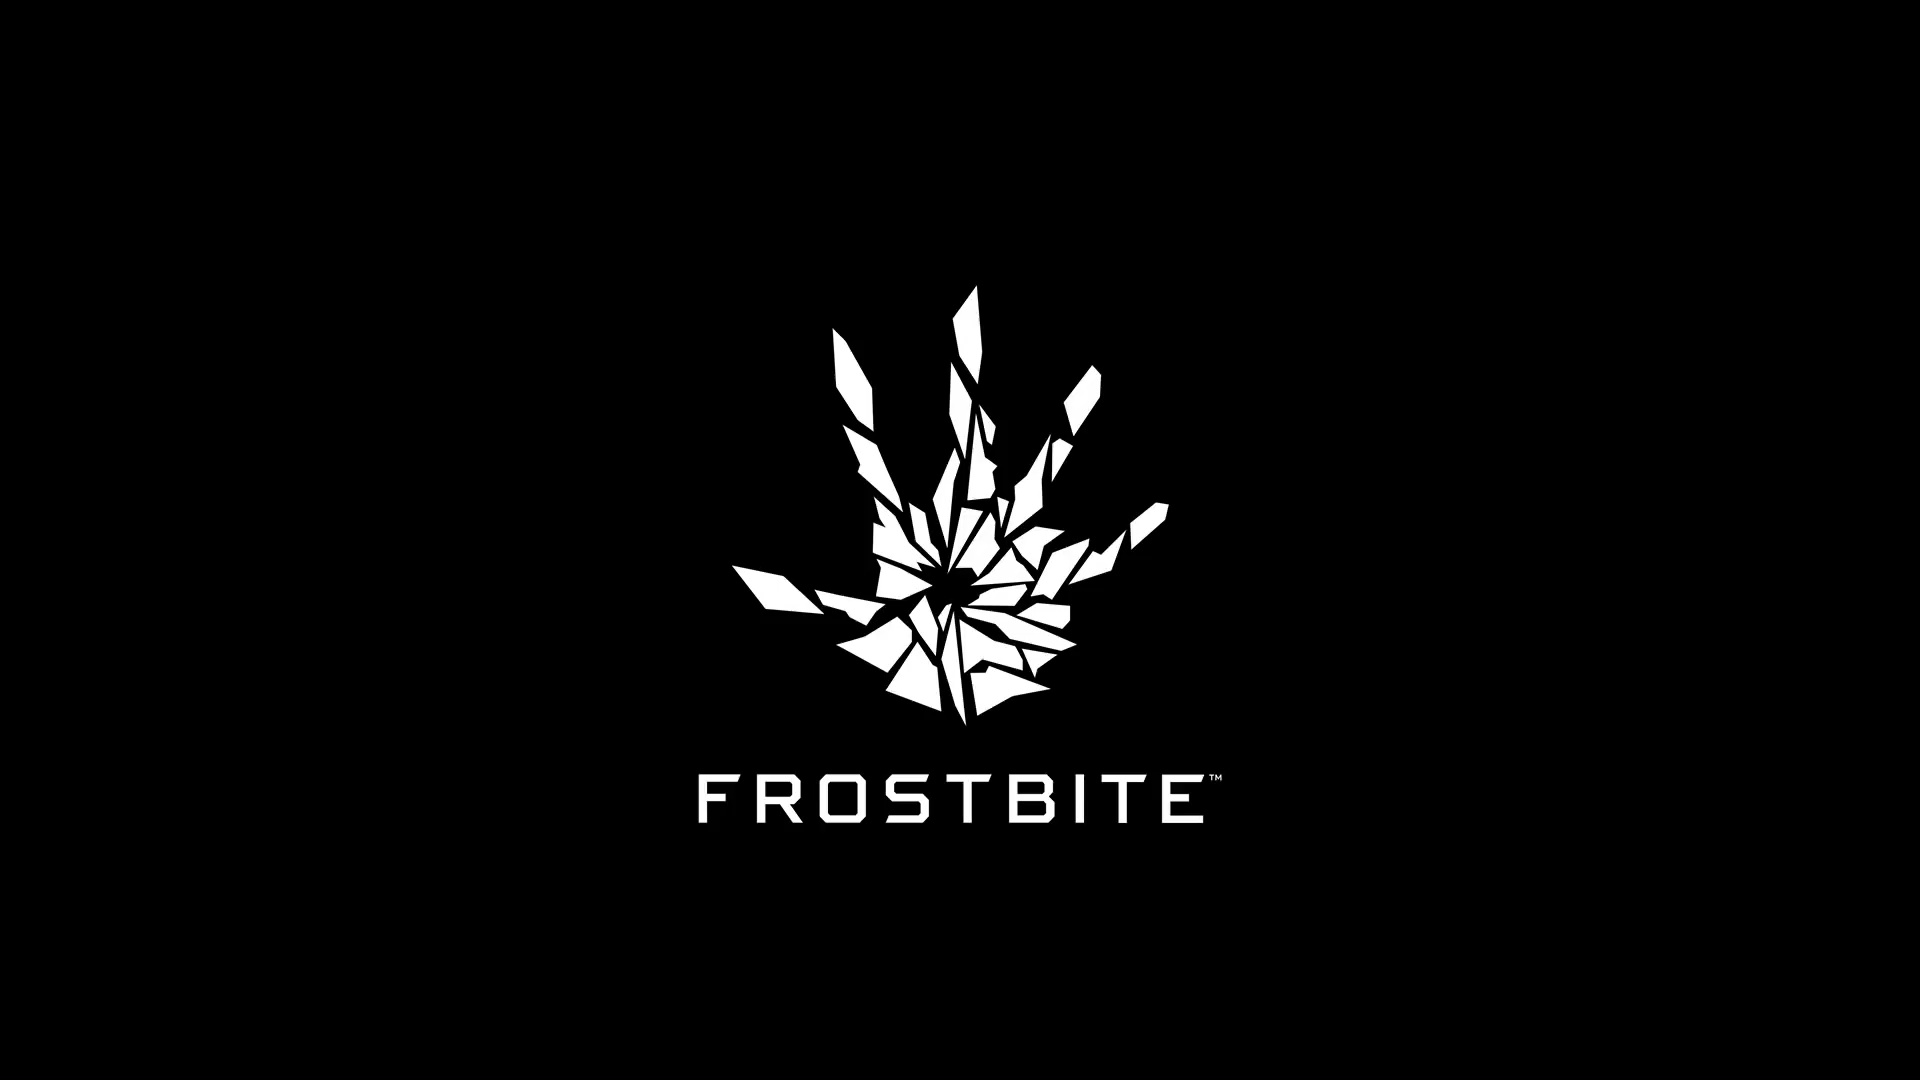 Hd Wallpapers For Mobile Free Download 480x800 Frostbite Logo Wallpaper 00028 Baltana